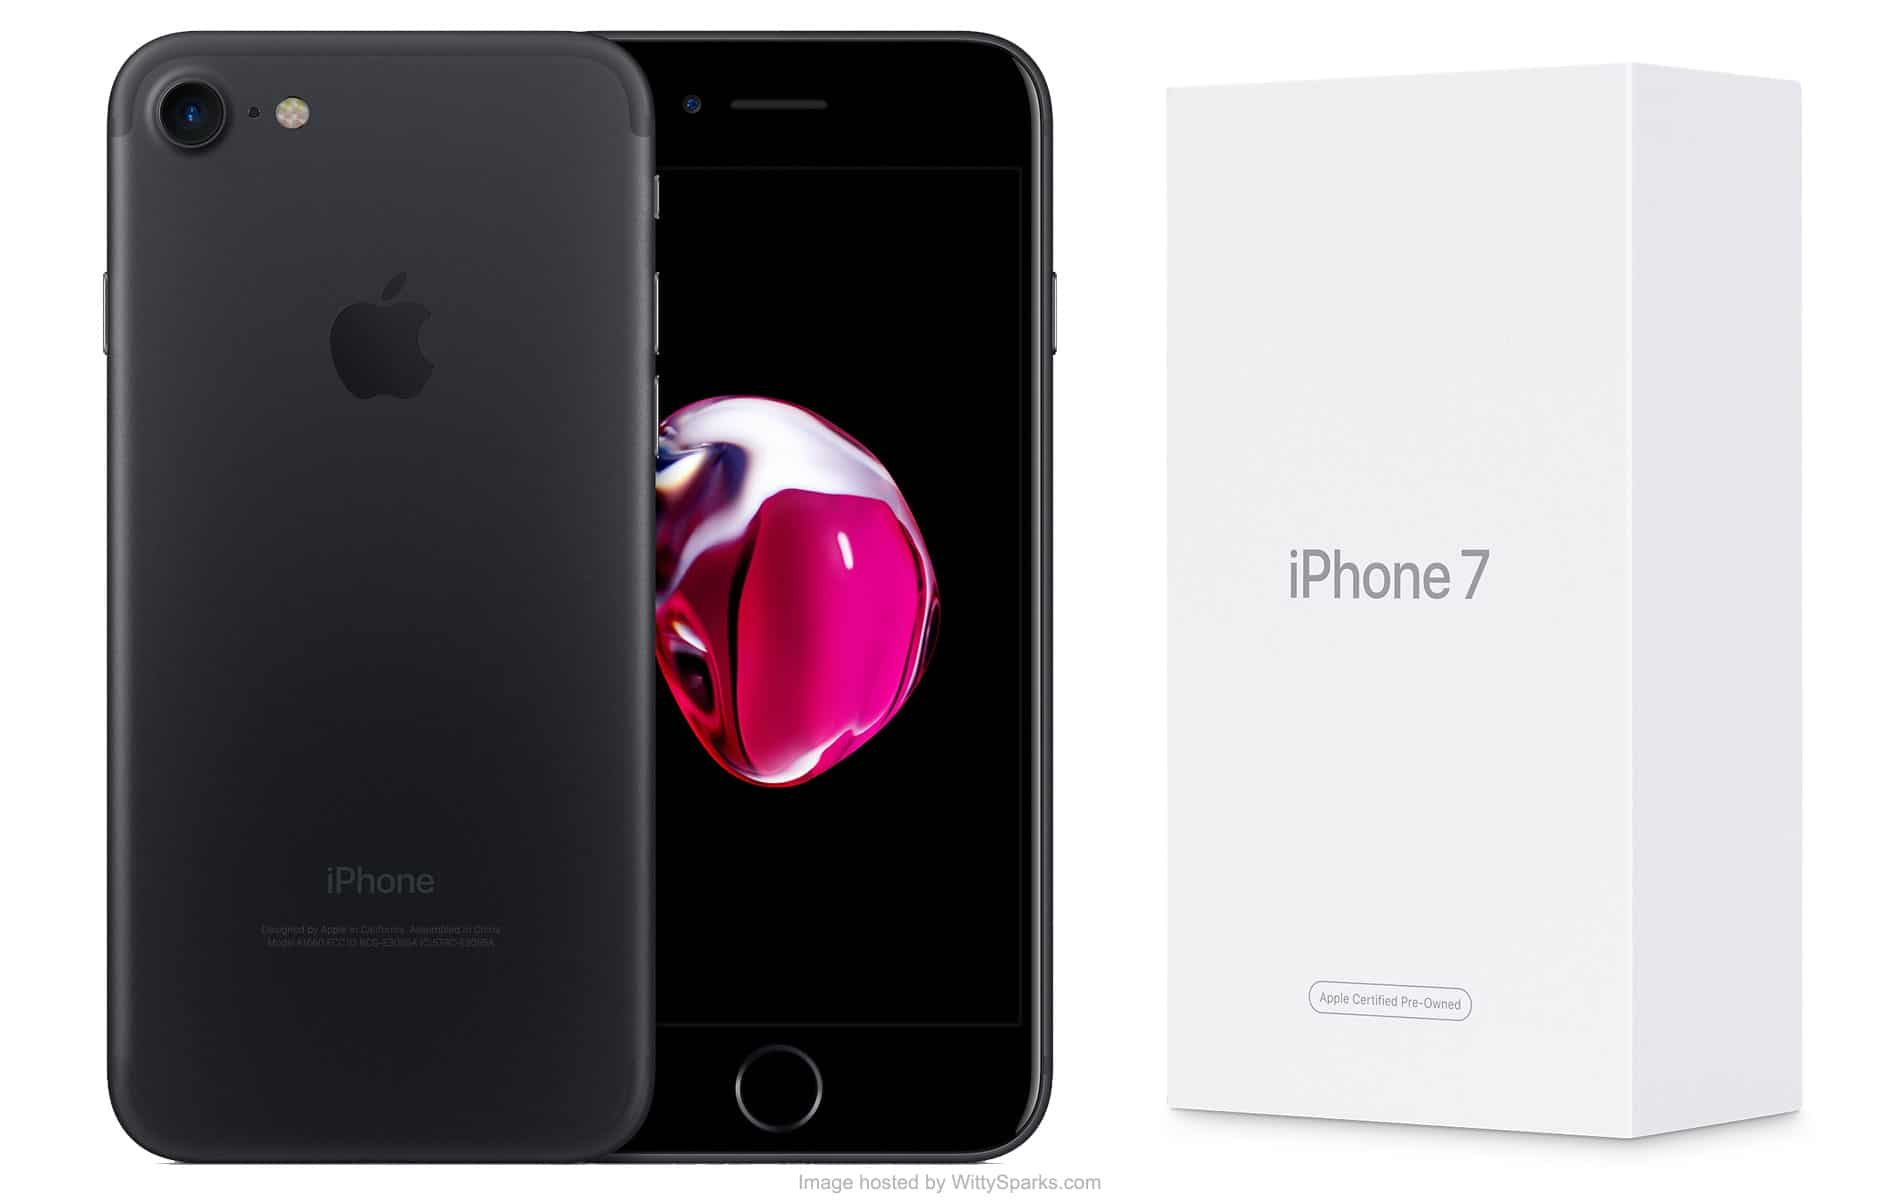 Use iPhone 7 as business phone